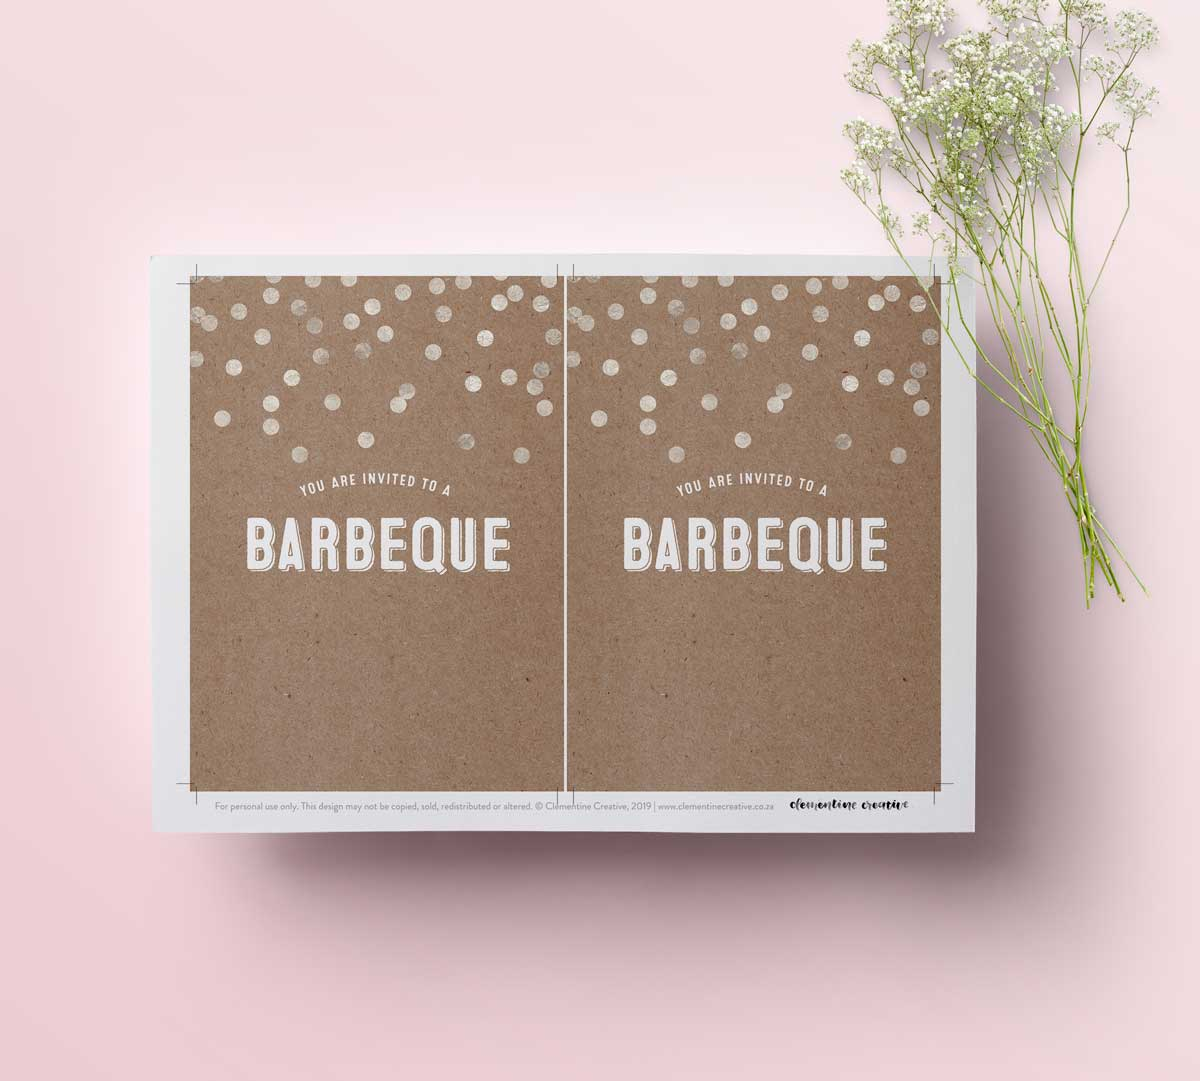 picture regarding Free Printable Bbq Invitations referred to as Toss a Elegant Barbeque Get together With This Stunning Invitation